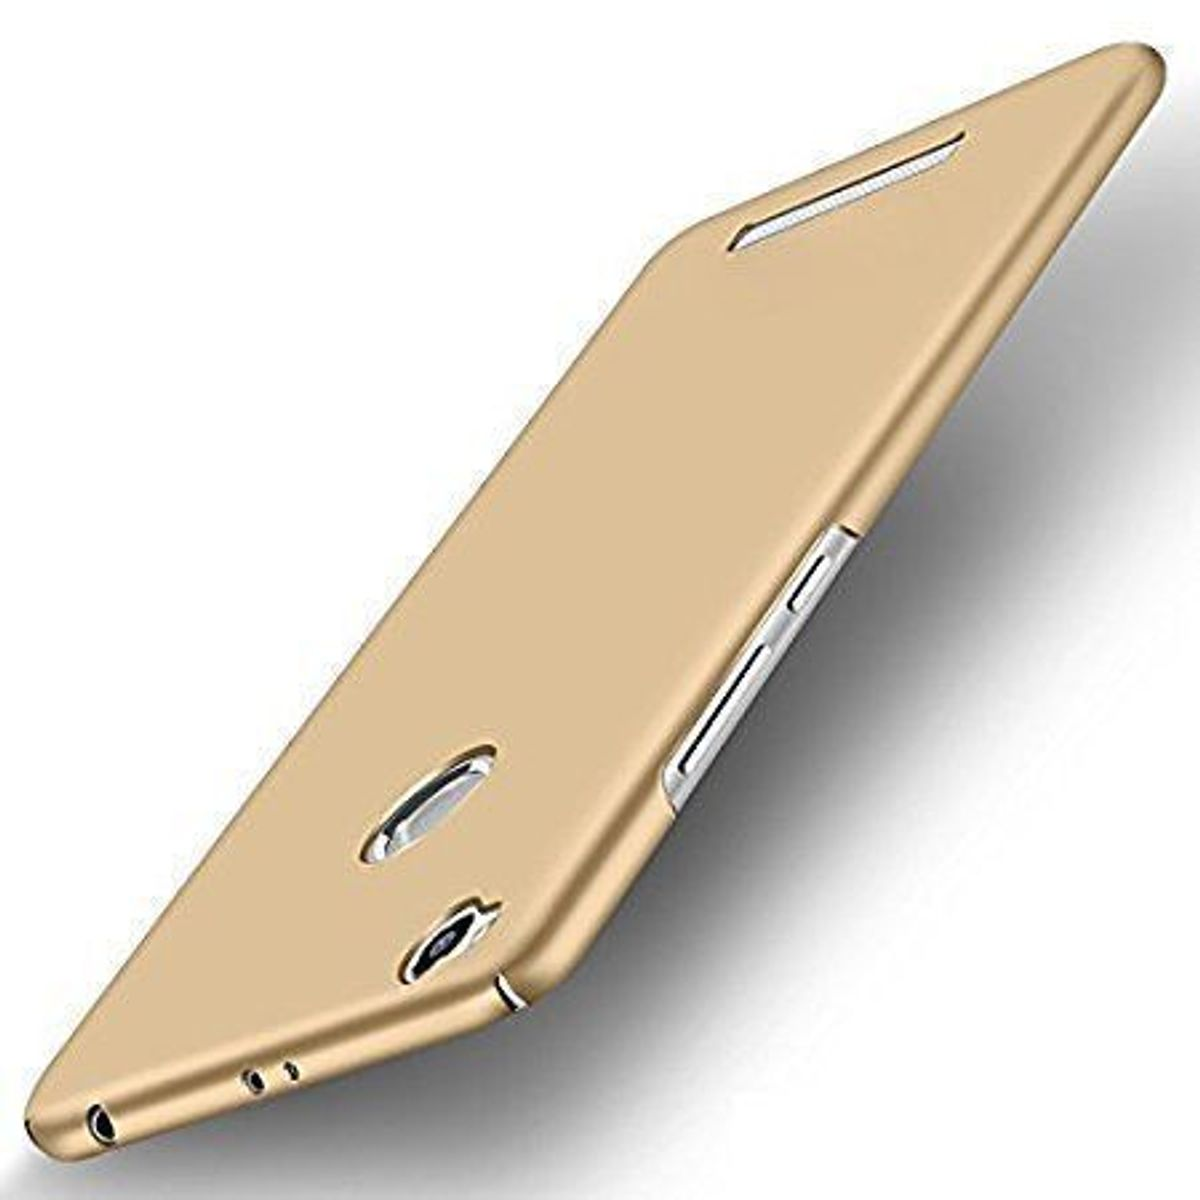 Buy Ipaky Sleek Rubberised Matte Hard Case At Lowest Price Back Xiaomi Mi Max Gold Cover For Redmi 3s Prime